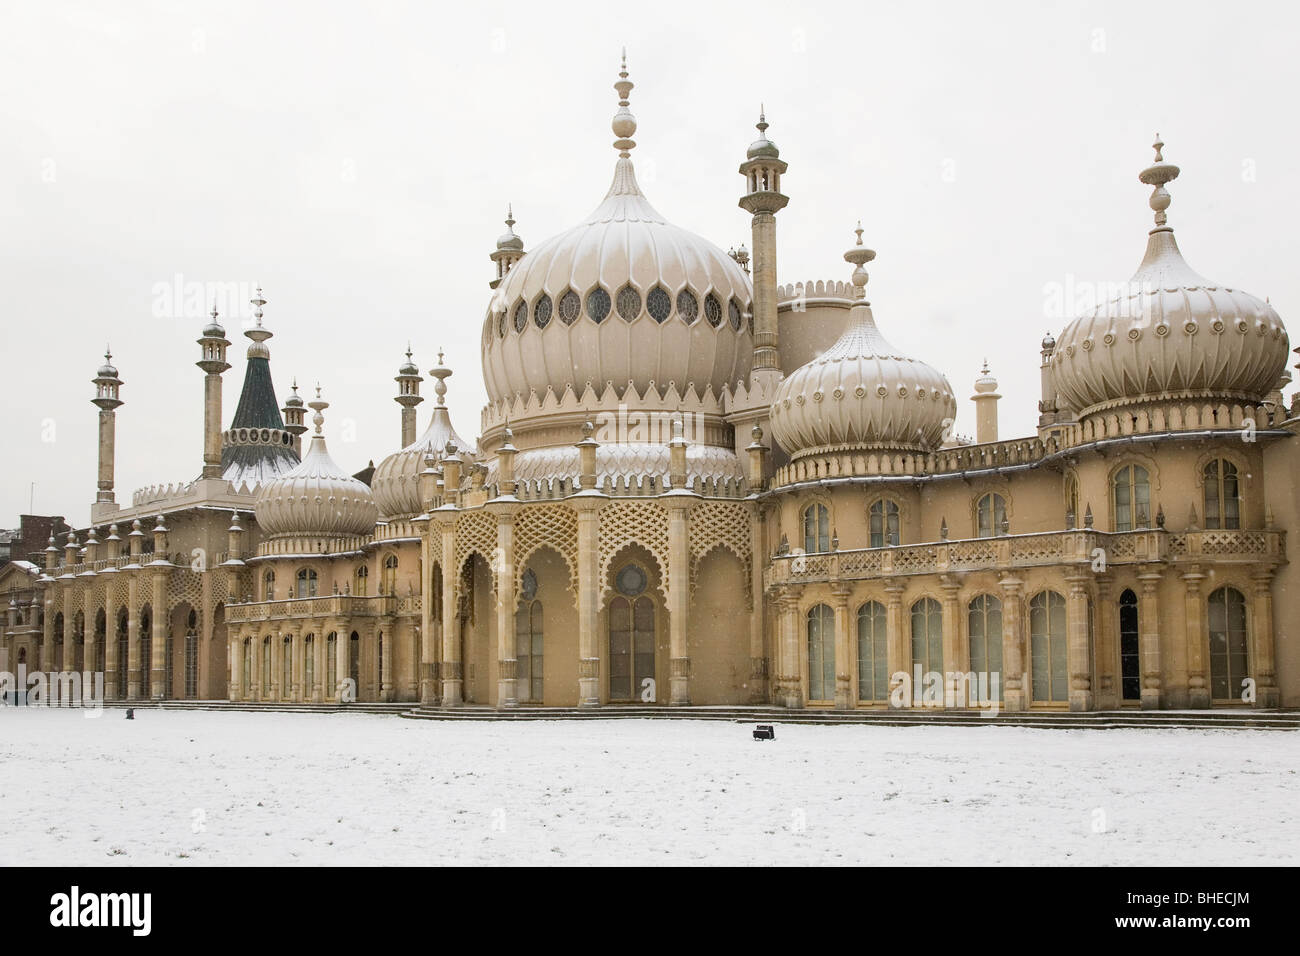 Snow falls on on the Royal Pavilion in Brighton, England. Stock Photo